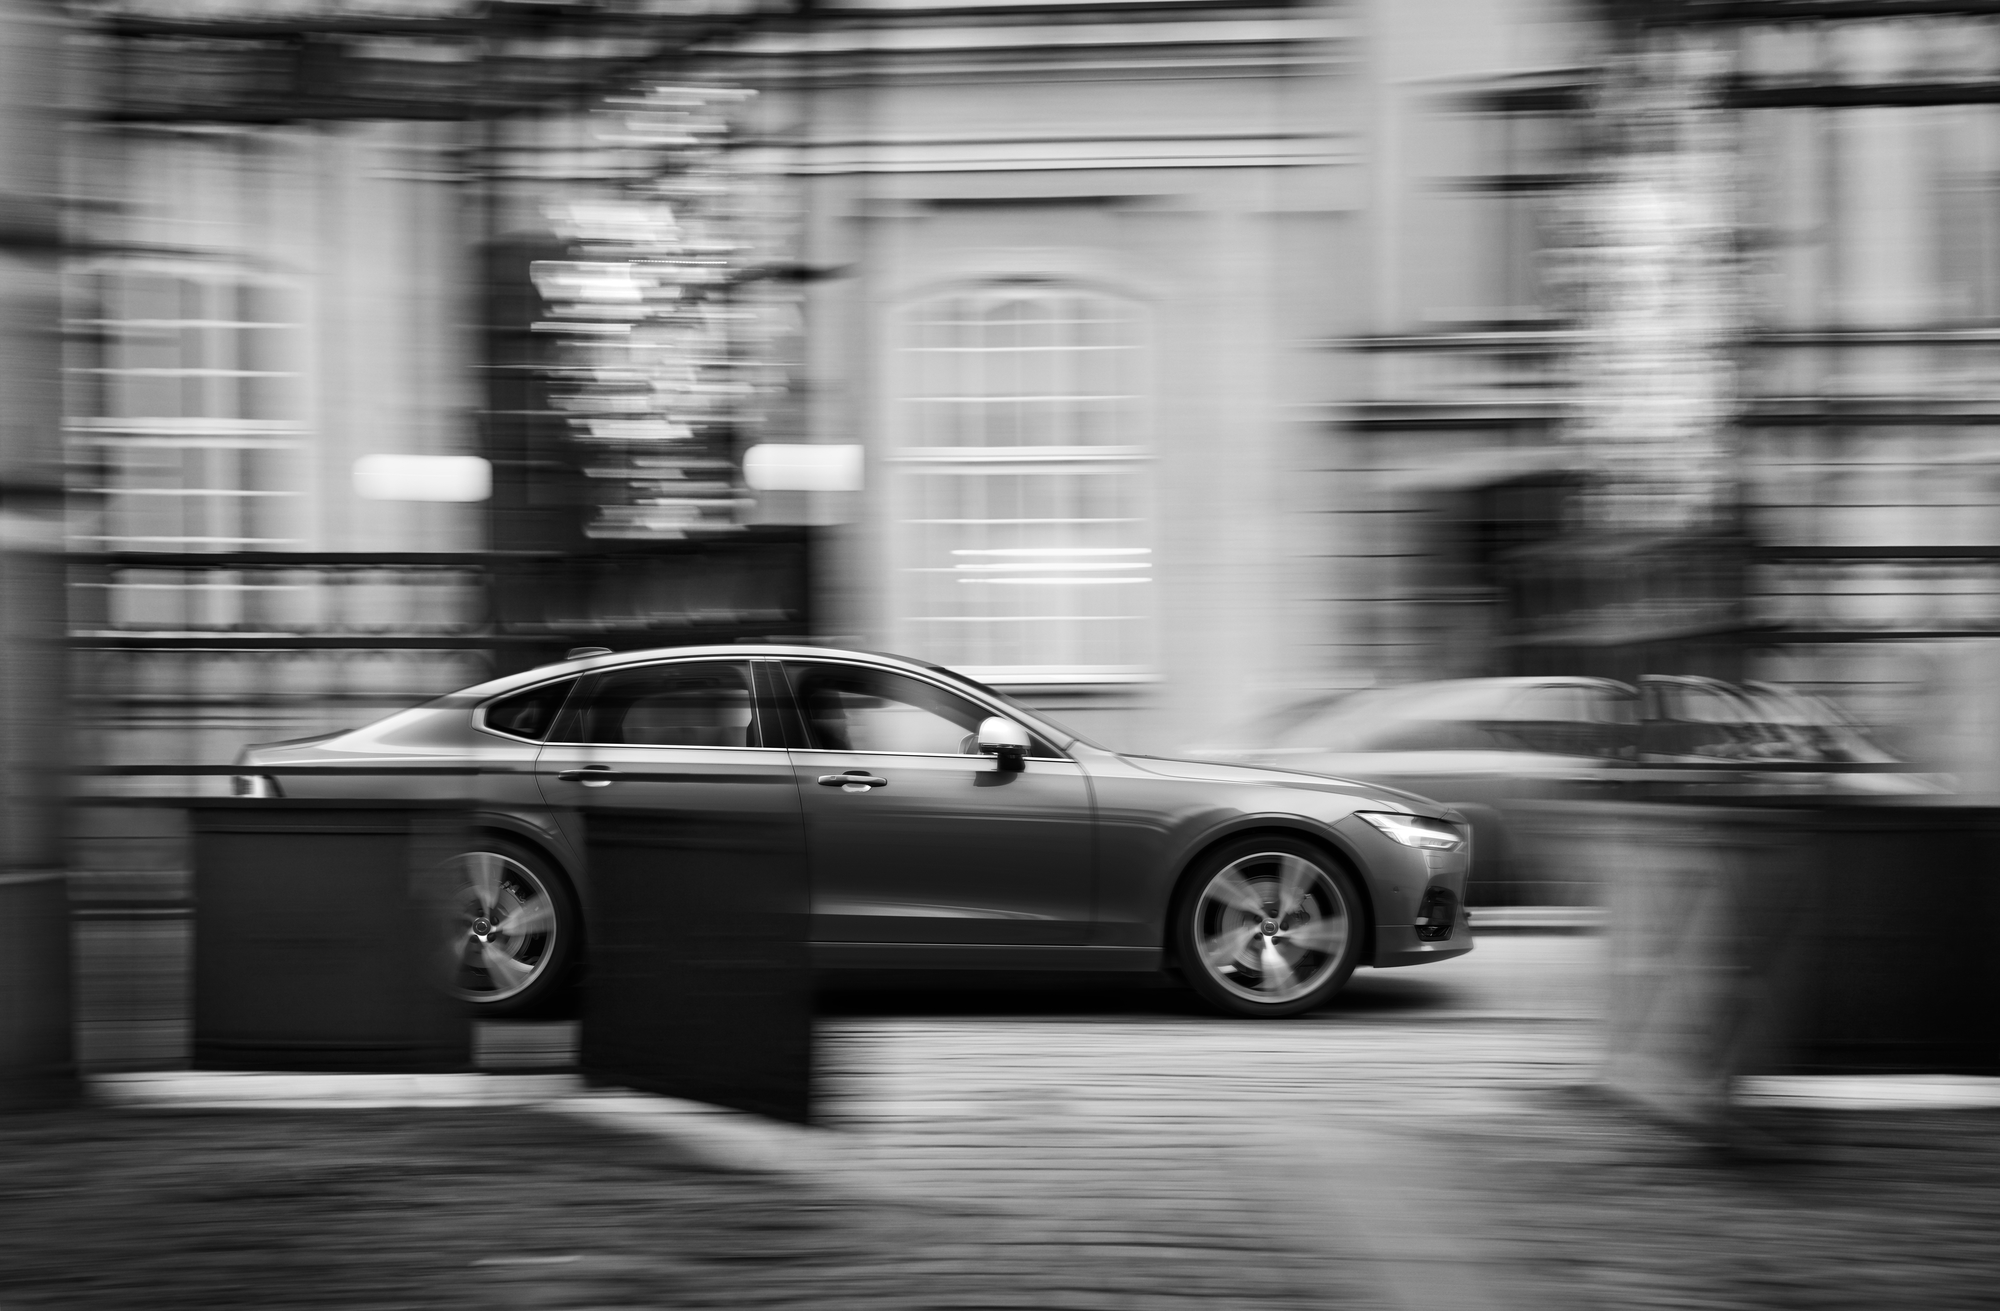 Volvo V90 R in blue black and white picture driving by some buildings- Blurry pictur